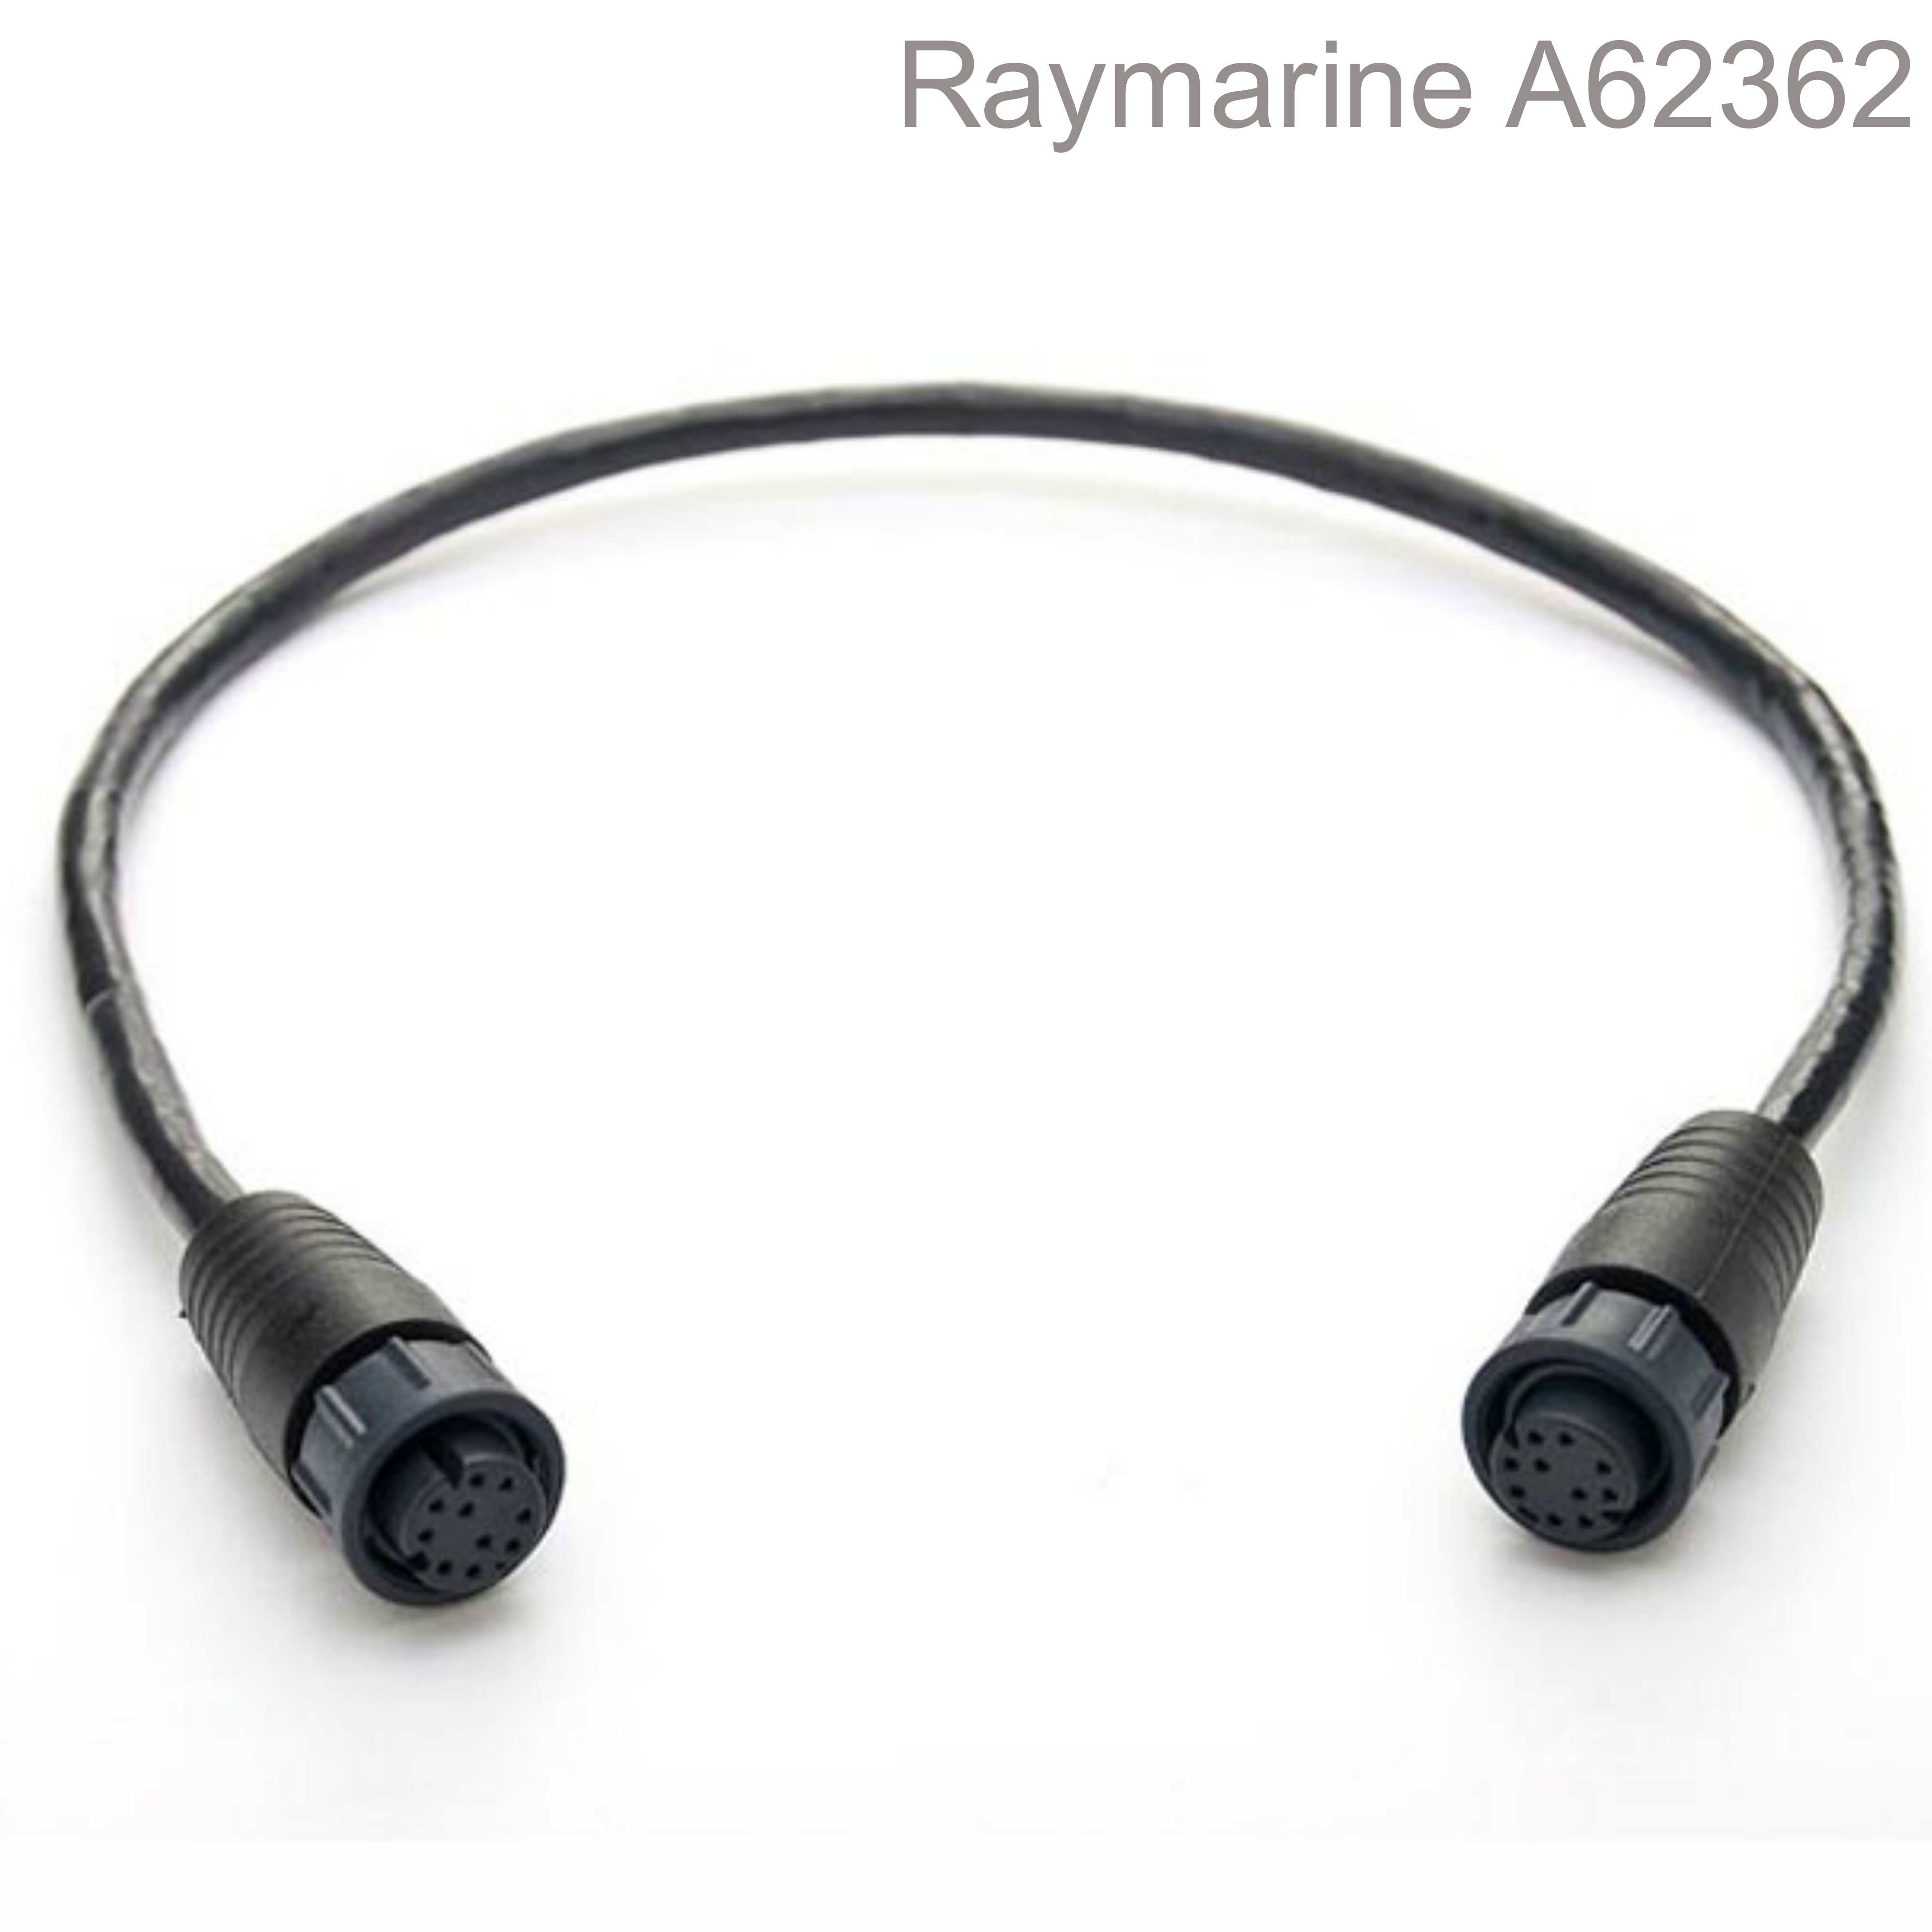 Raymarine-A62362|RayNet to RayNet Cable|10m|Female To Female|For Marine & Boats